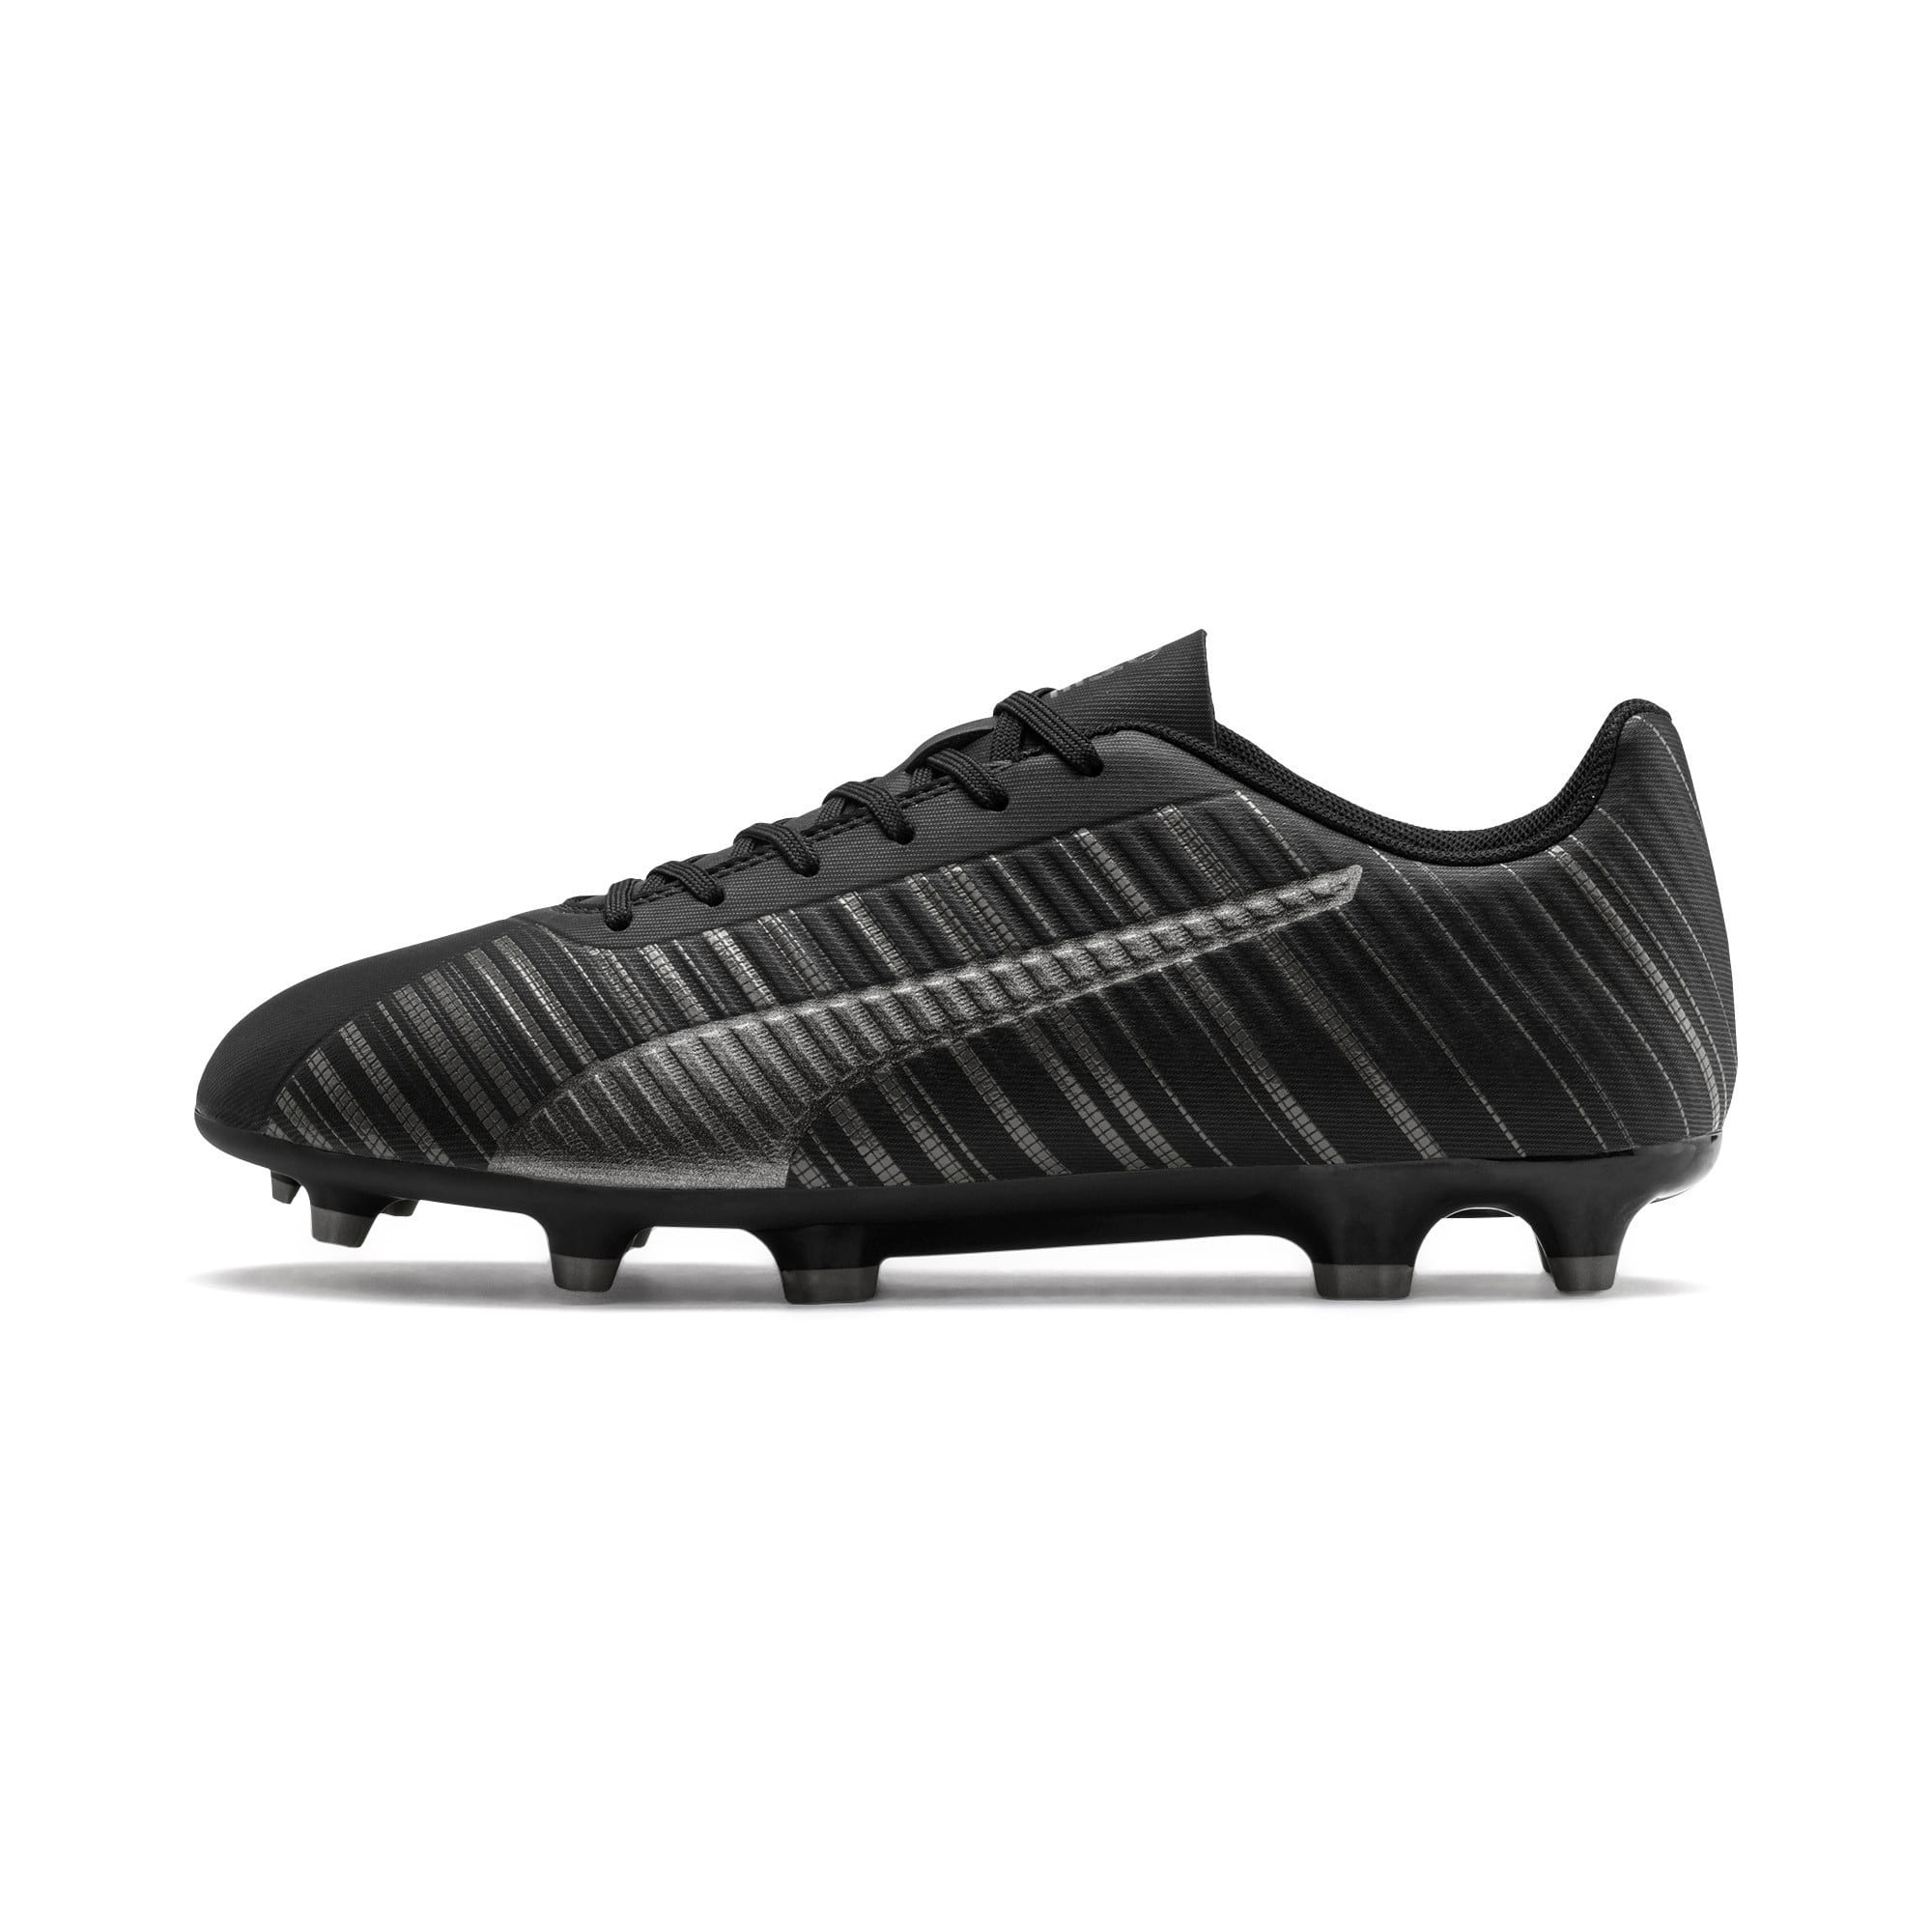 Thumbnail 1 of PUMA ONE 5.4 Men's FG/AG Football Boots, Black-Black-Puma Aged Silver, medium-IND